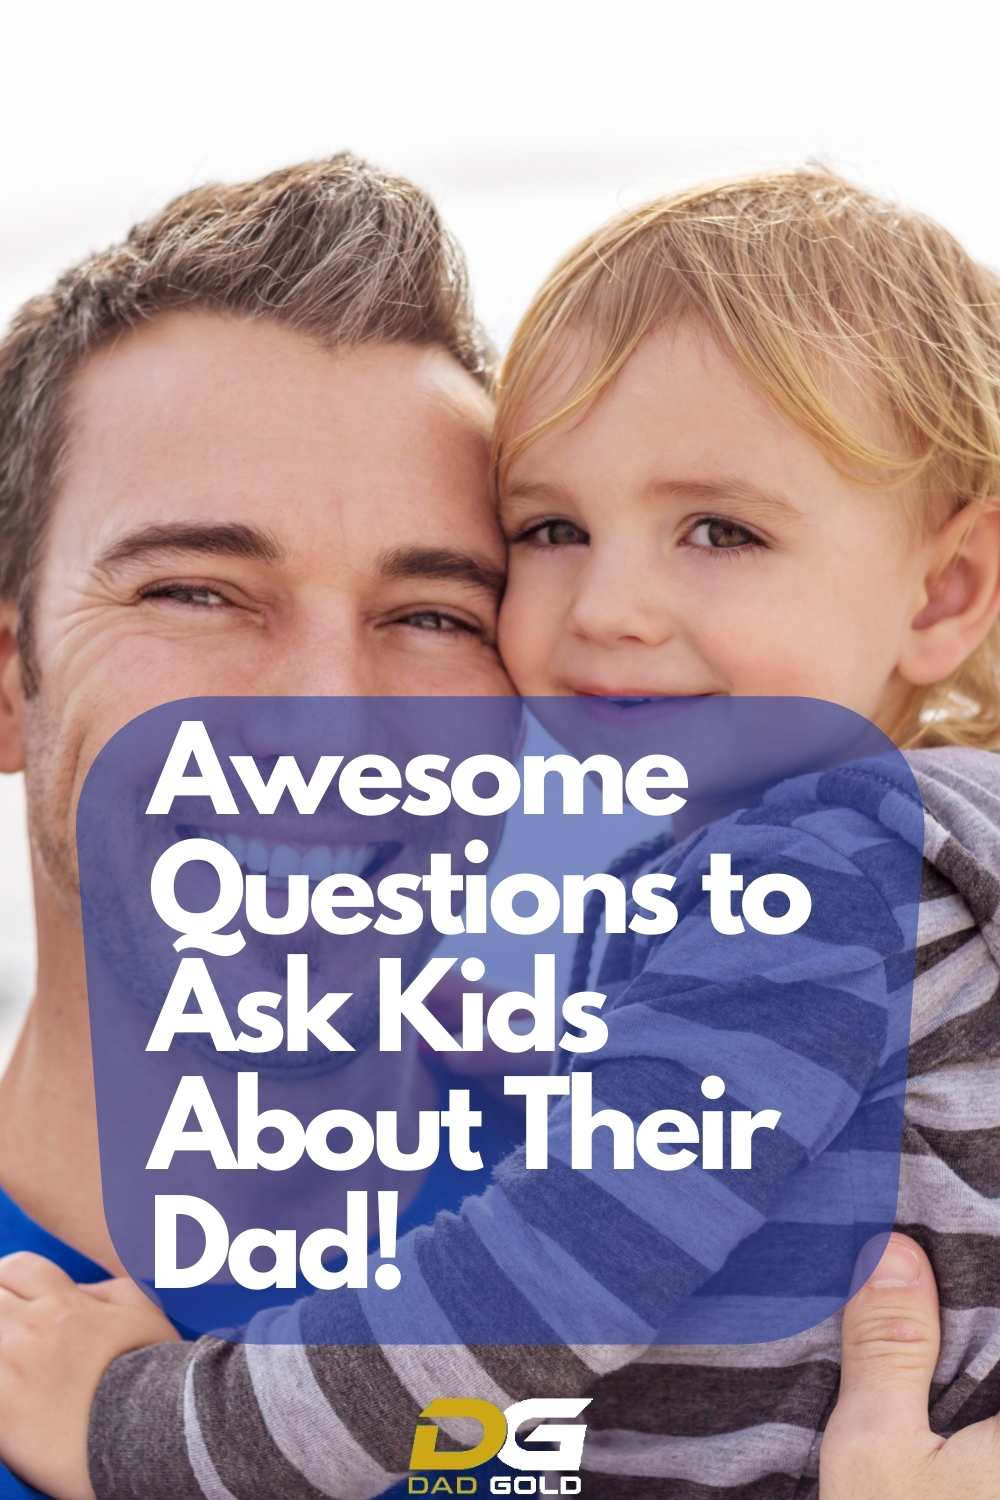 Questions to Ask Kids About Their Dad